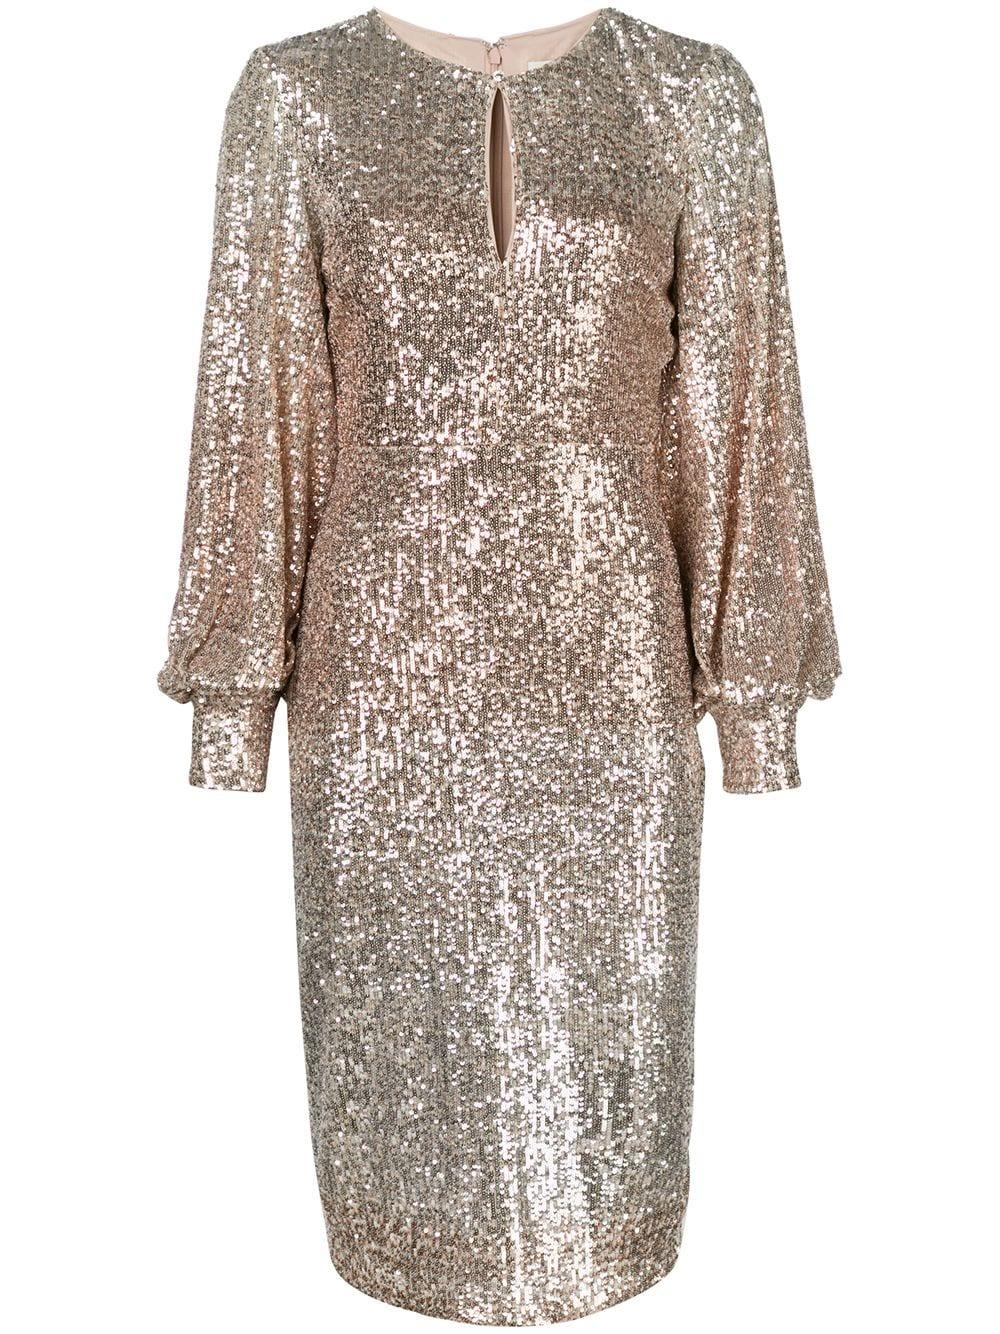 Ombre Sequin Long Sleeve Sheath Dress Item # SC2448